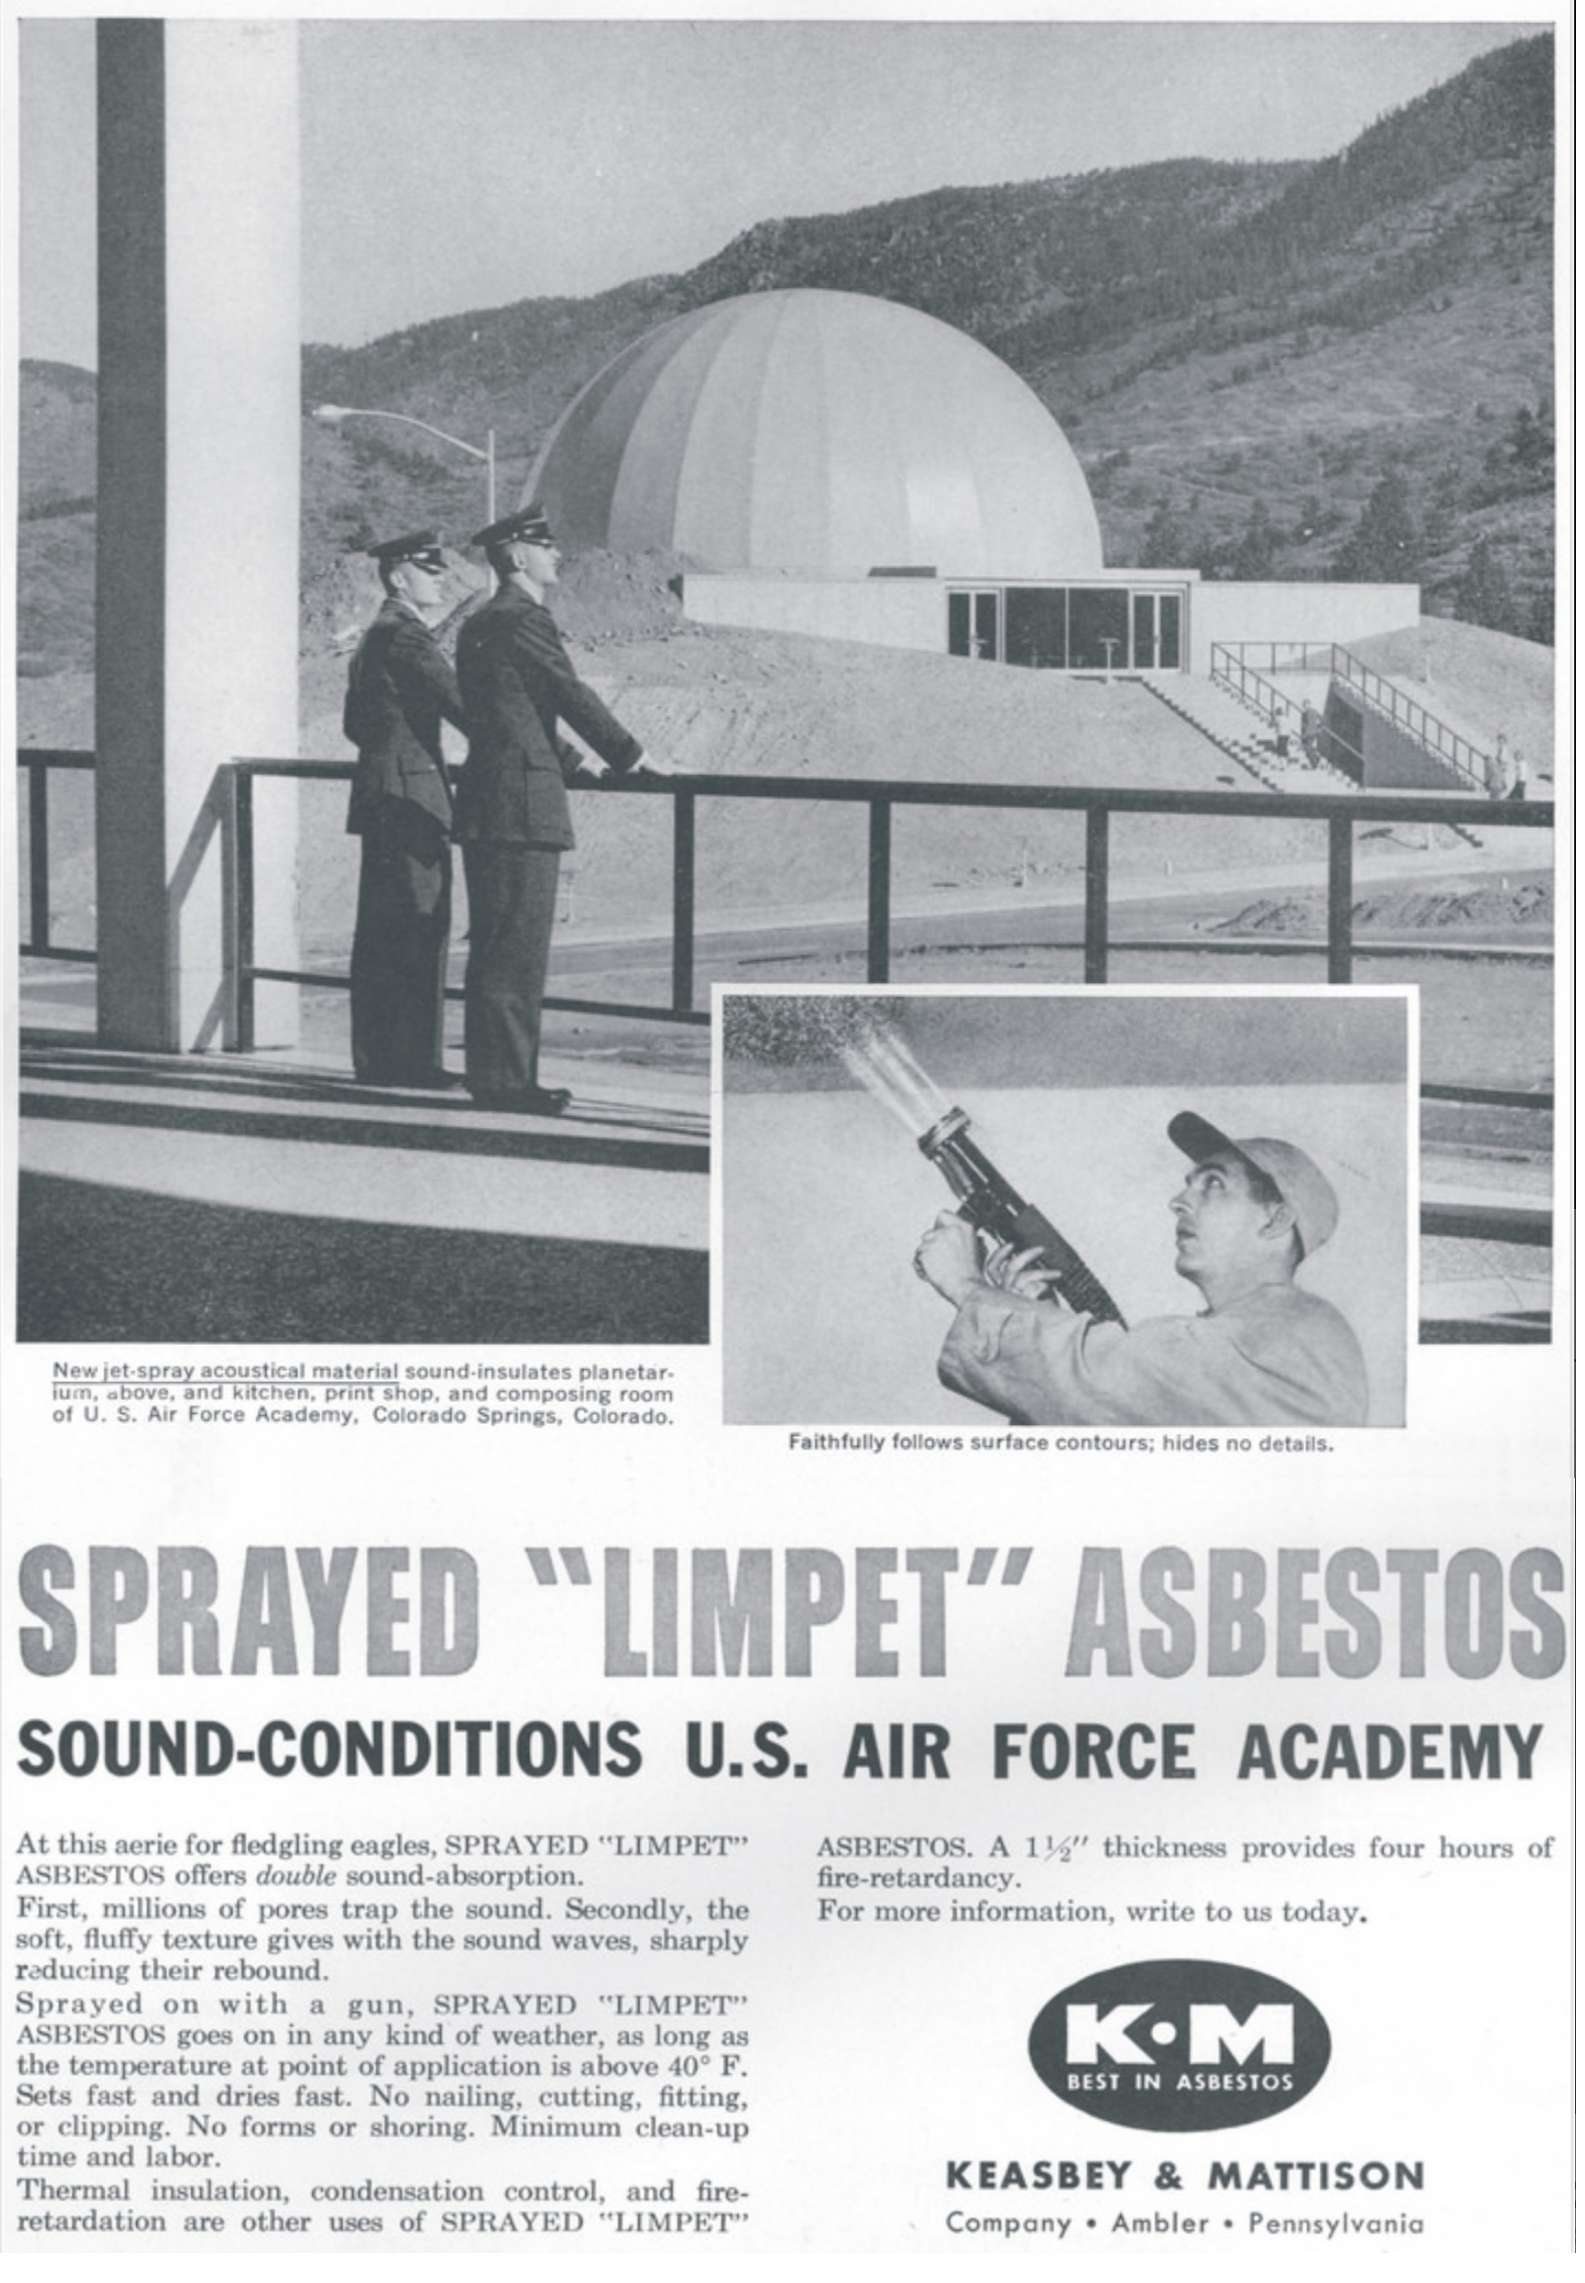 Complete List of forms in which asbestos was used, a list of known